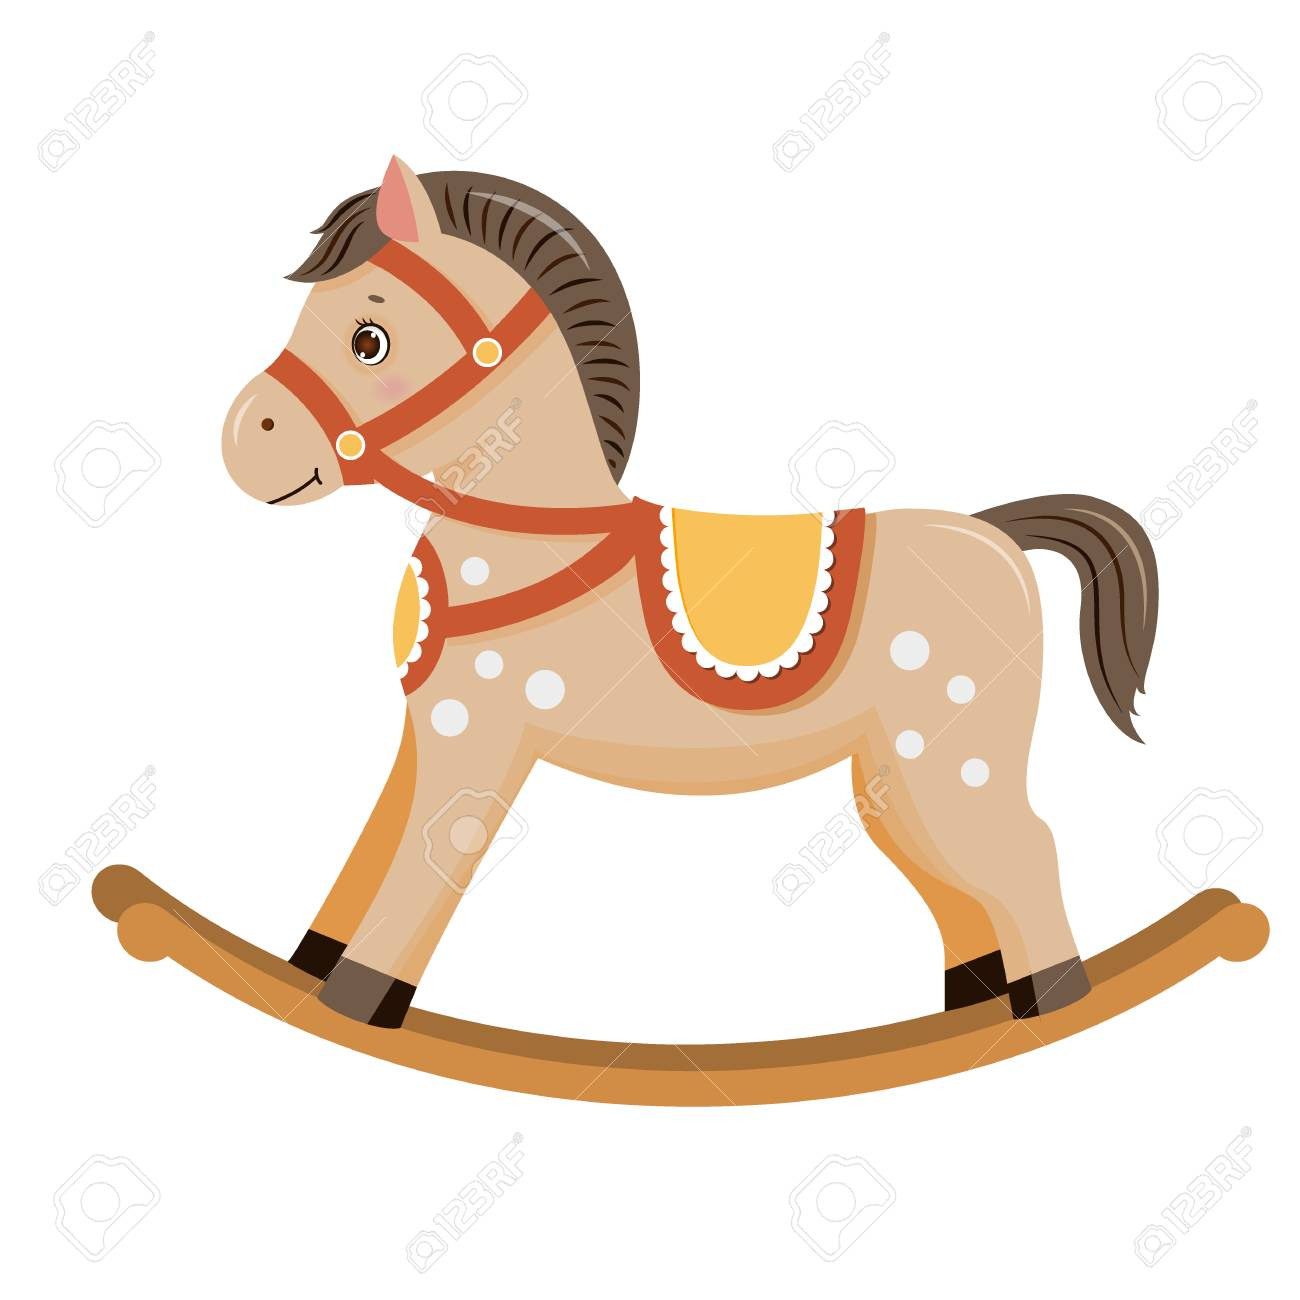 Rocking Horse Baby Toy Royalty Free Cliparts Vectors And Stock Illustration Image 97737469